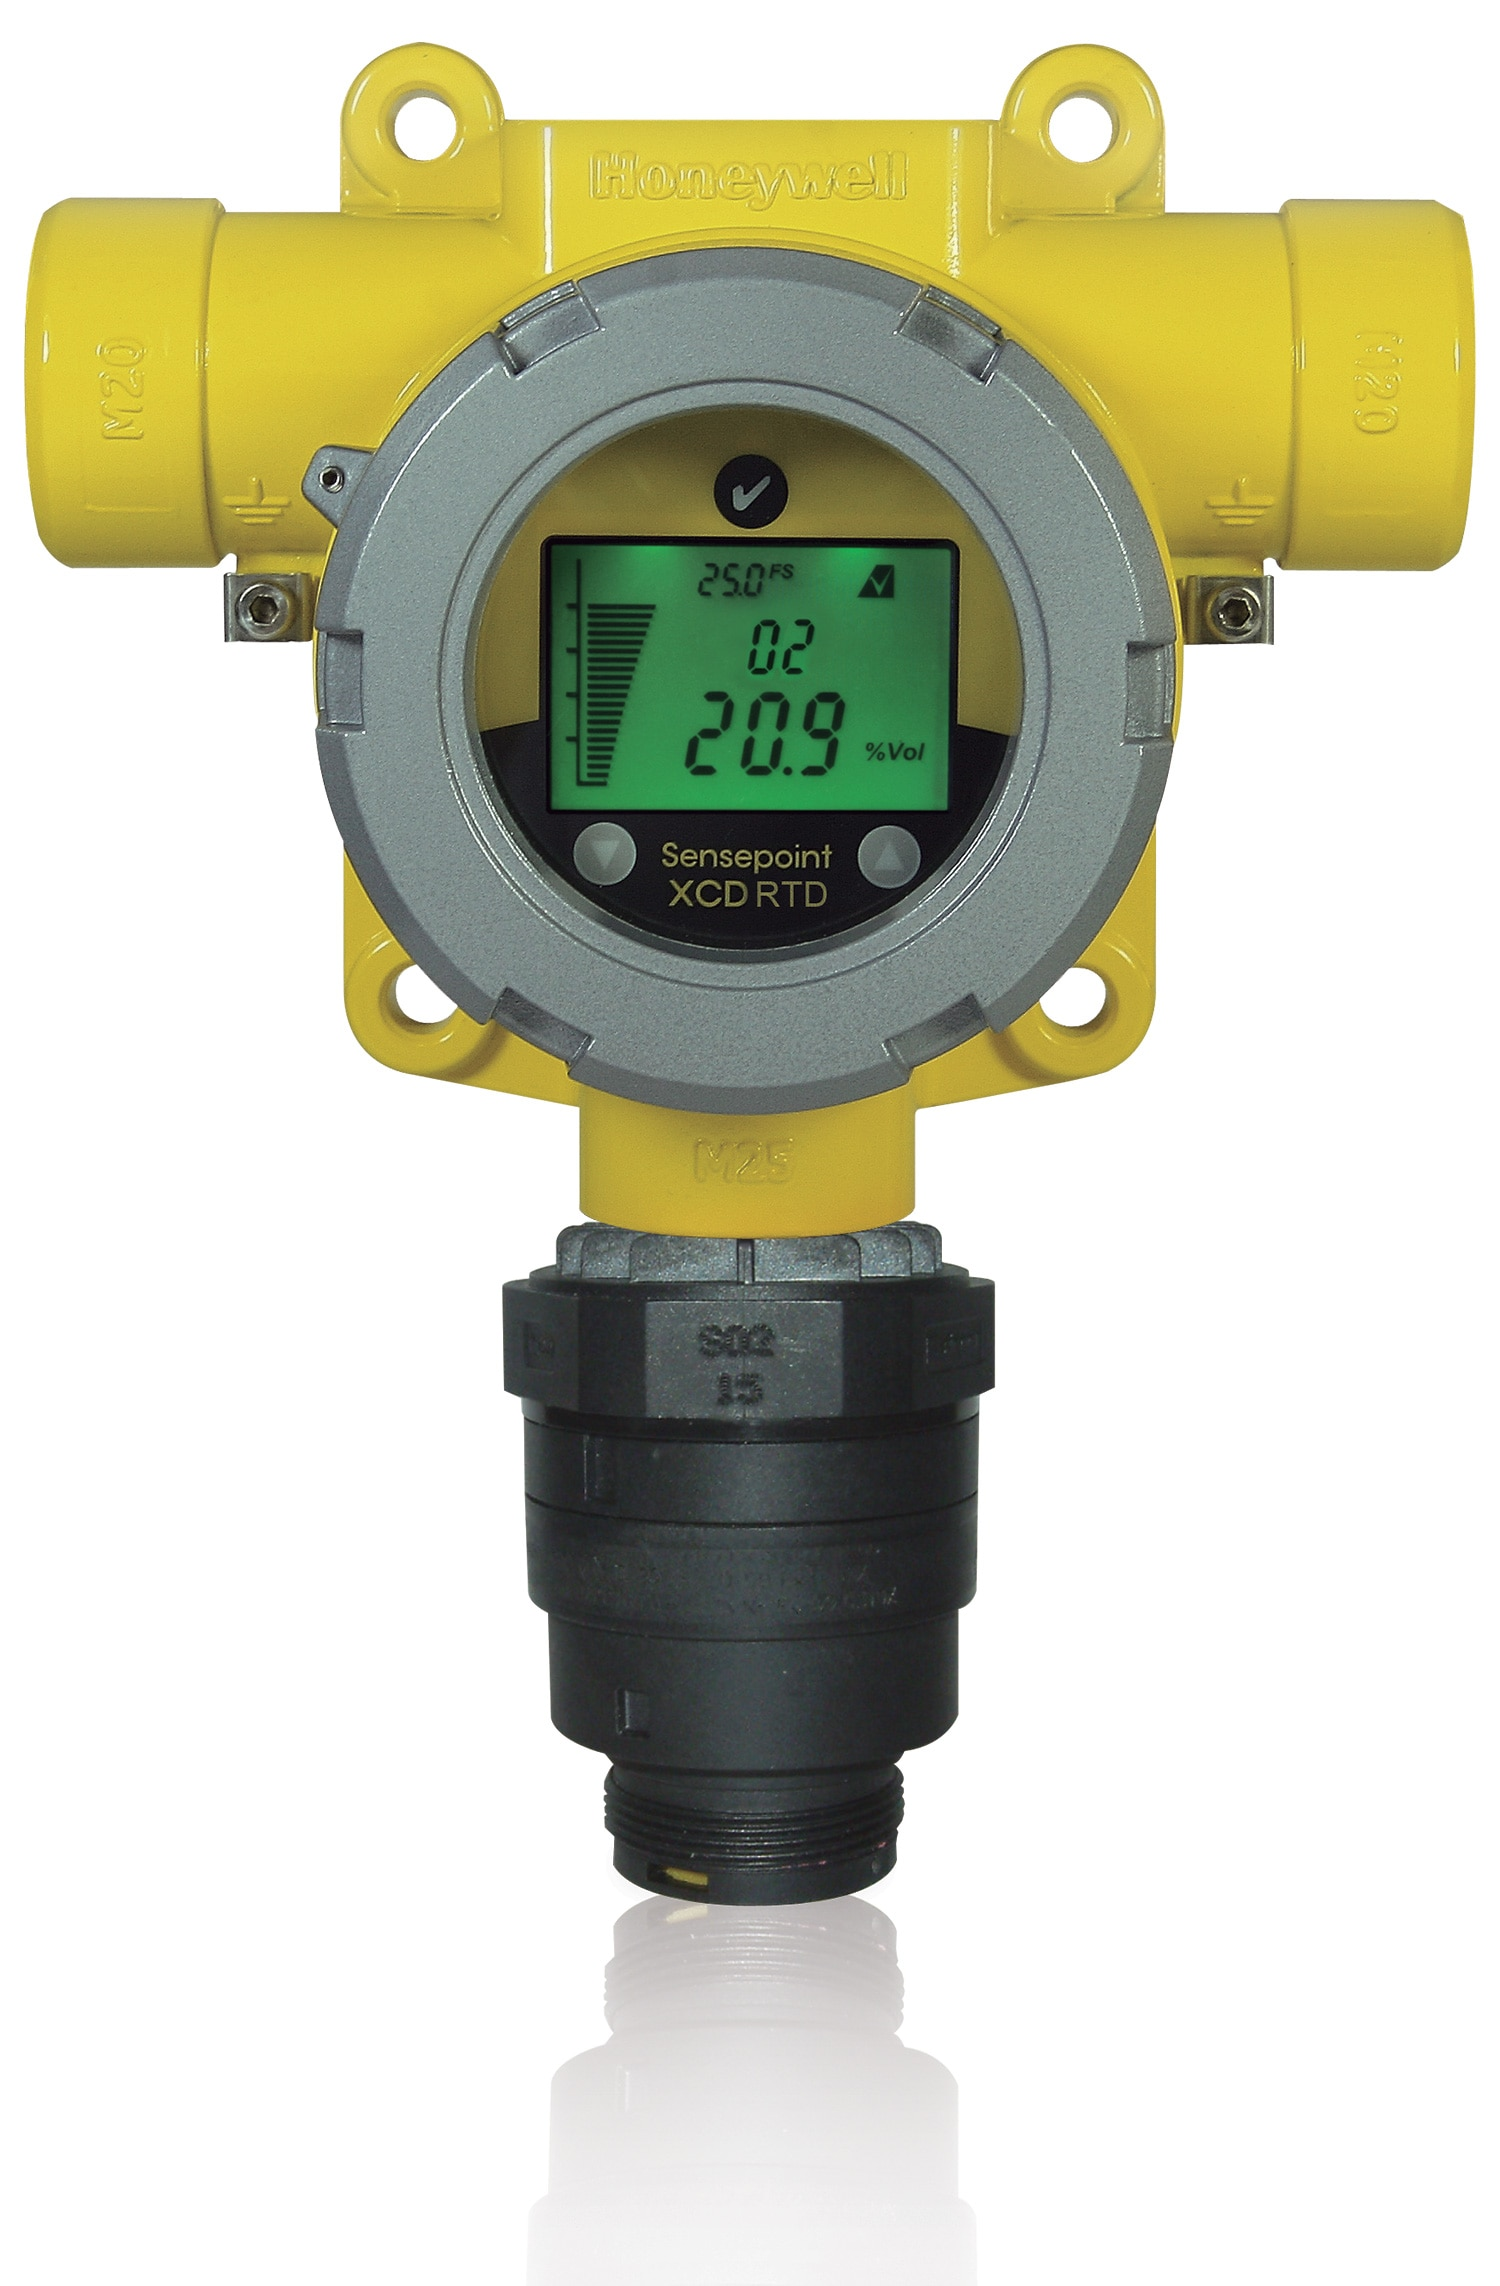 Remote Monitoring System For Toxic Gases Sensepoint Xcd